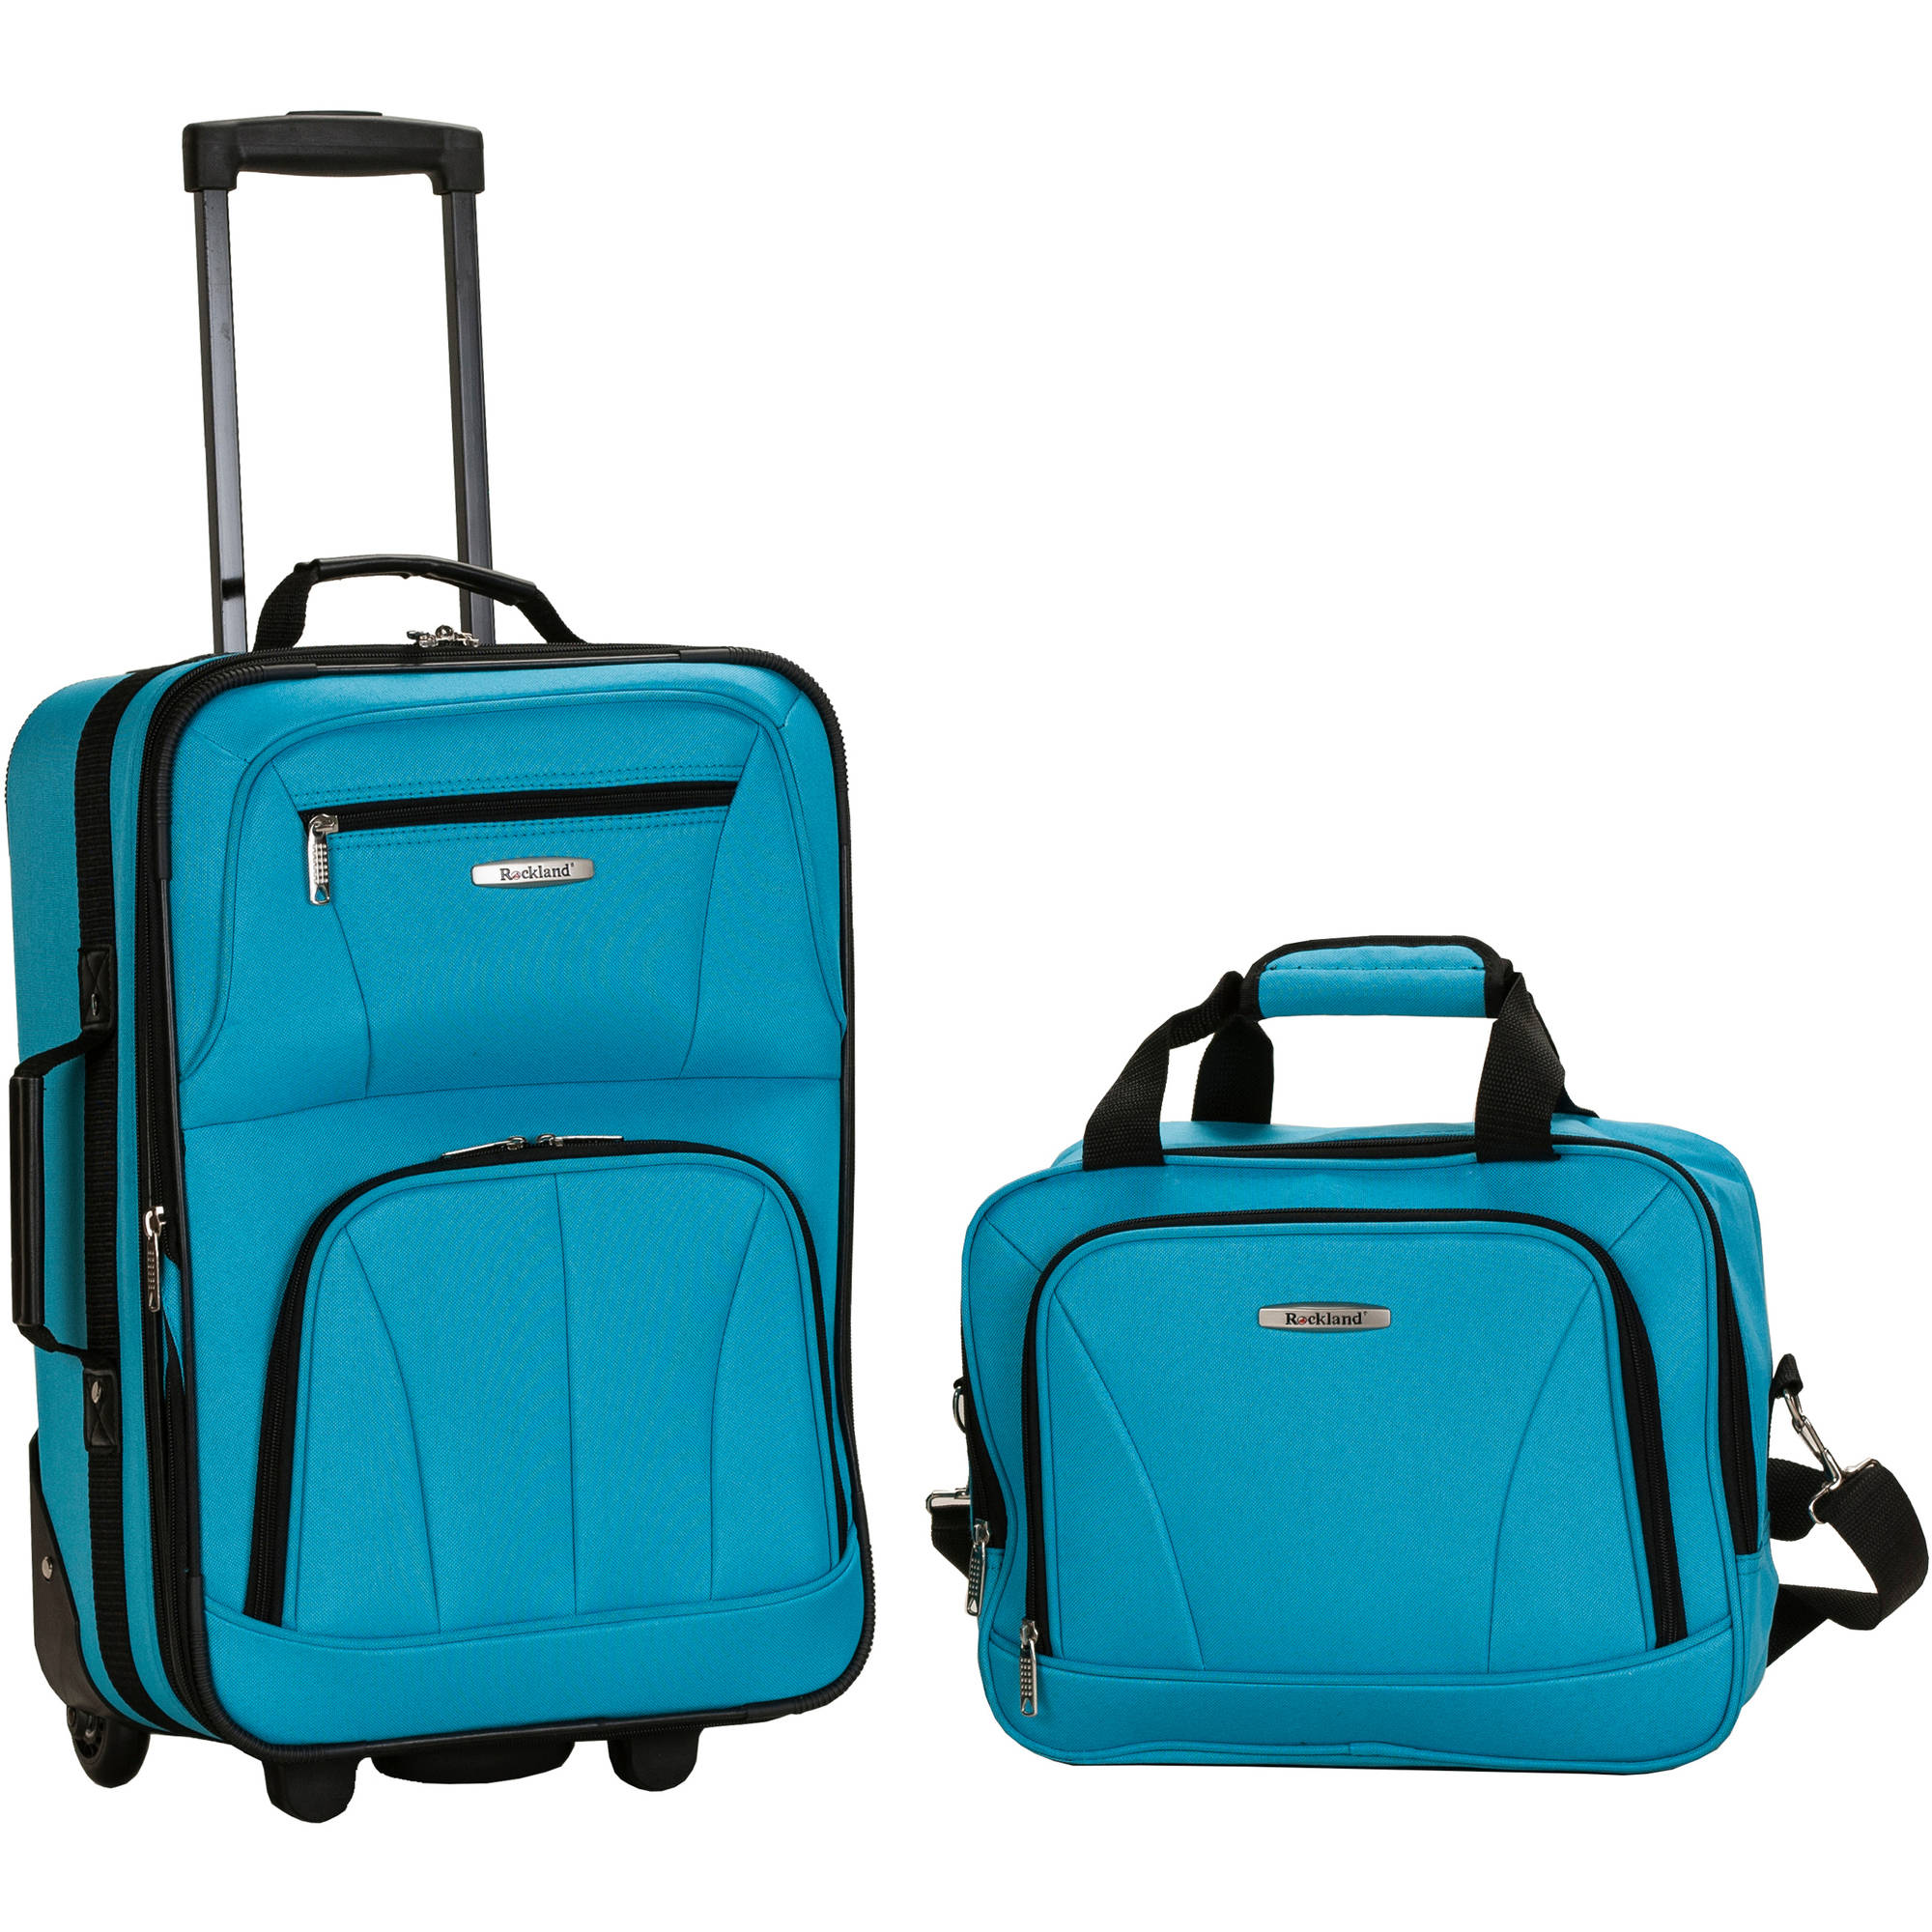 Rockland Luggage Rio 2-Piece Carry-On Luggage Set